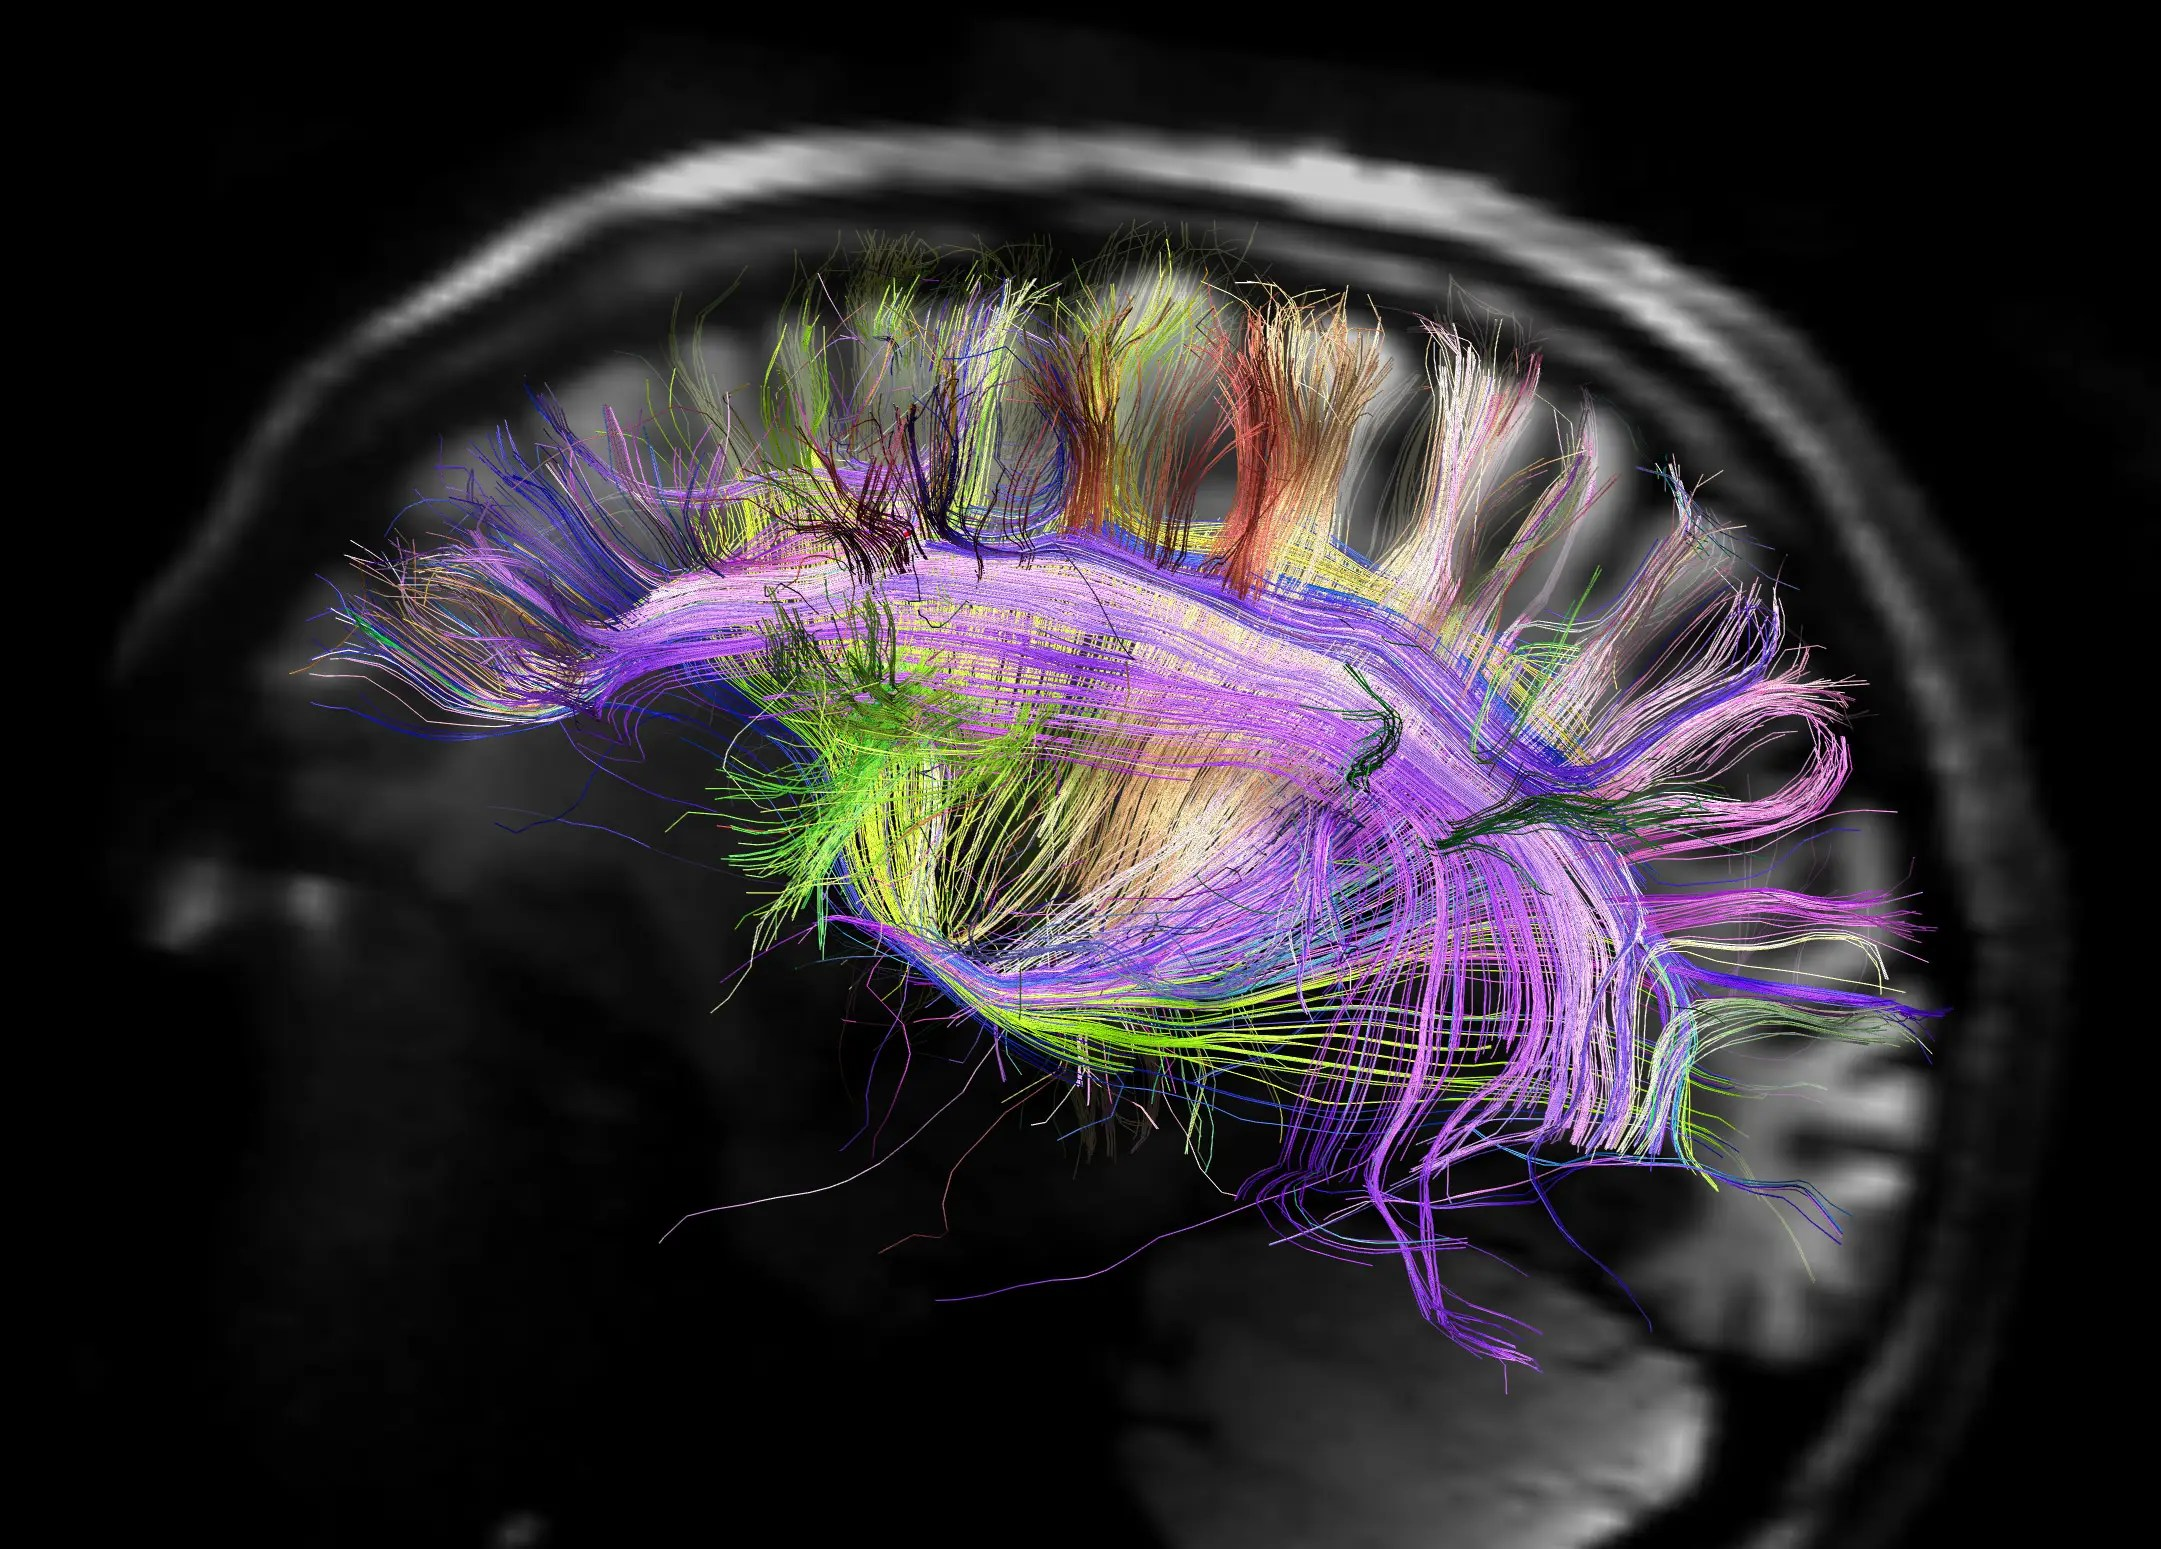 https://i0.wp.com/static4.businessinsider.com/image/508ede8eeab8ea2330000025/how-mapping-the-human-brain-will-help-us-understand-personality-and-mental-illness.jpg